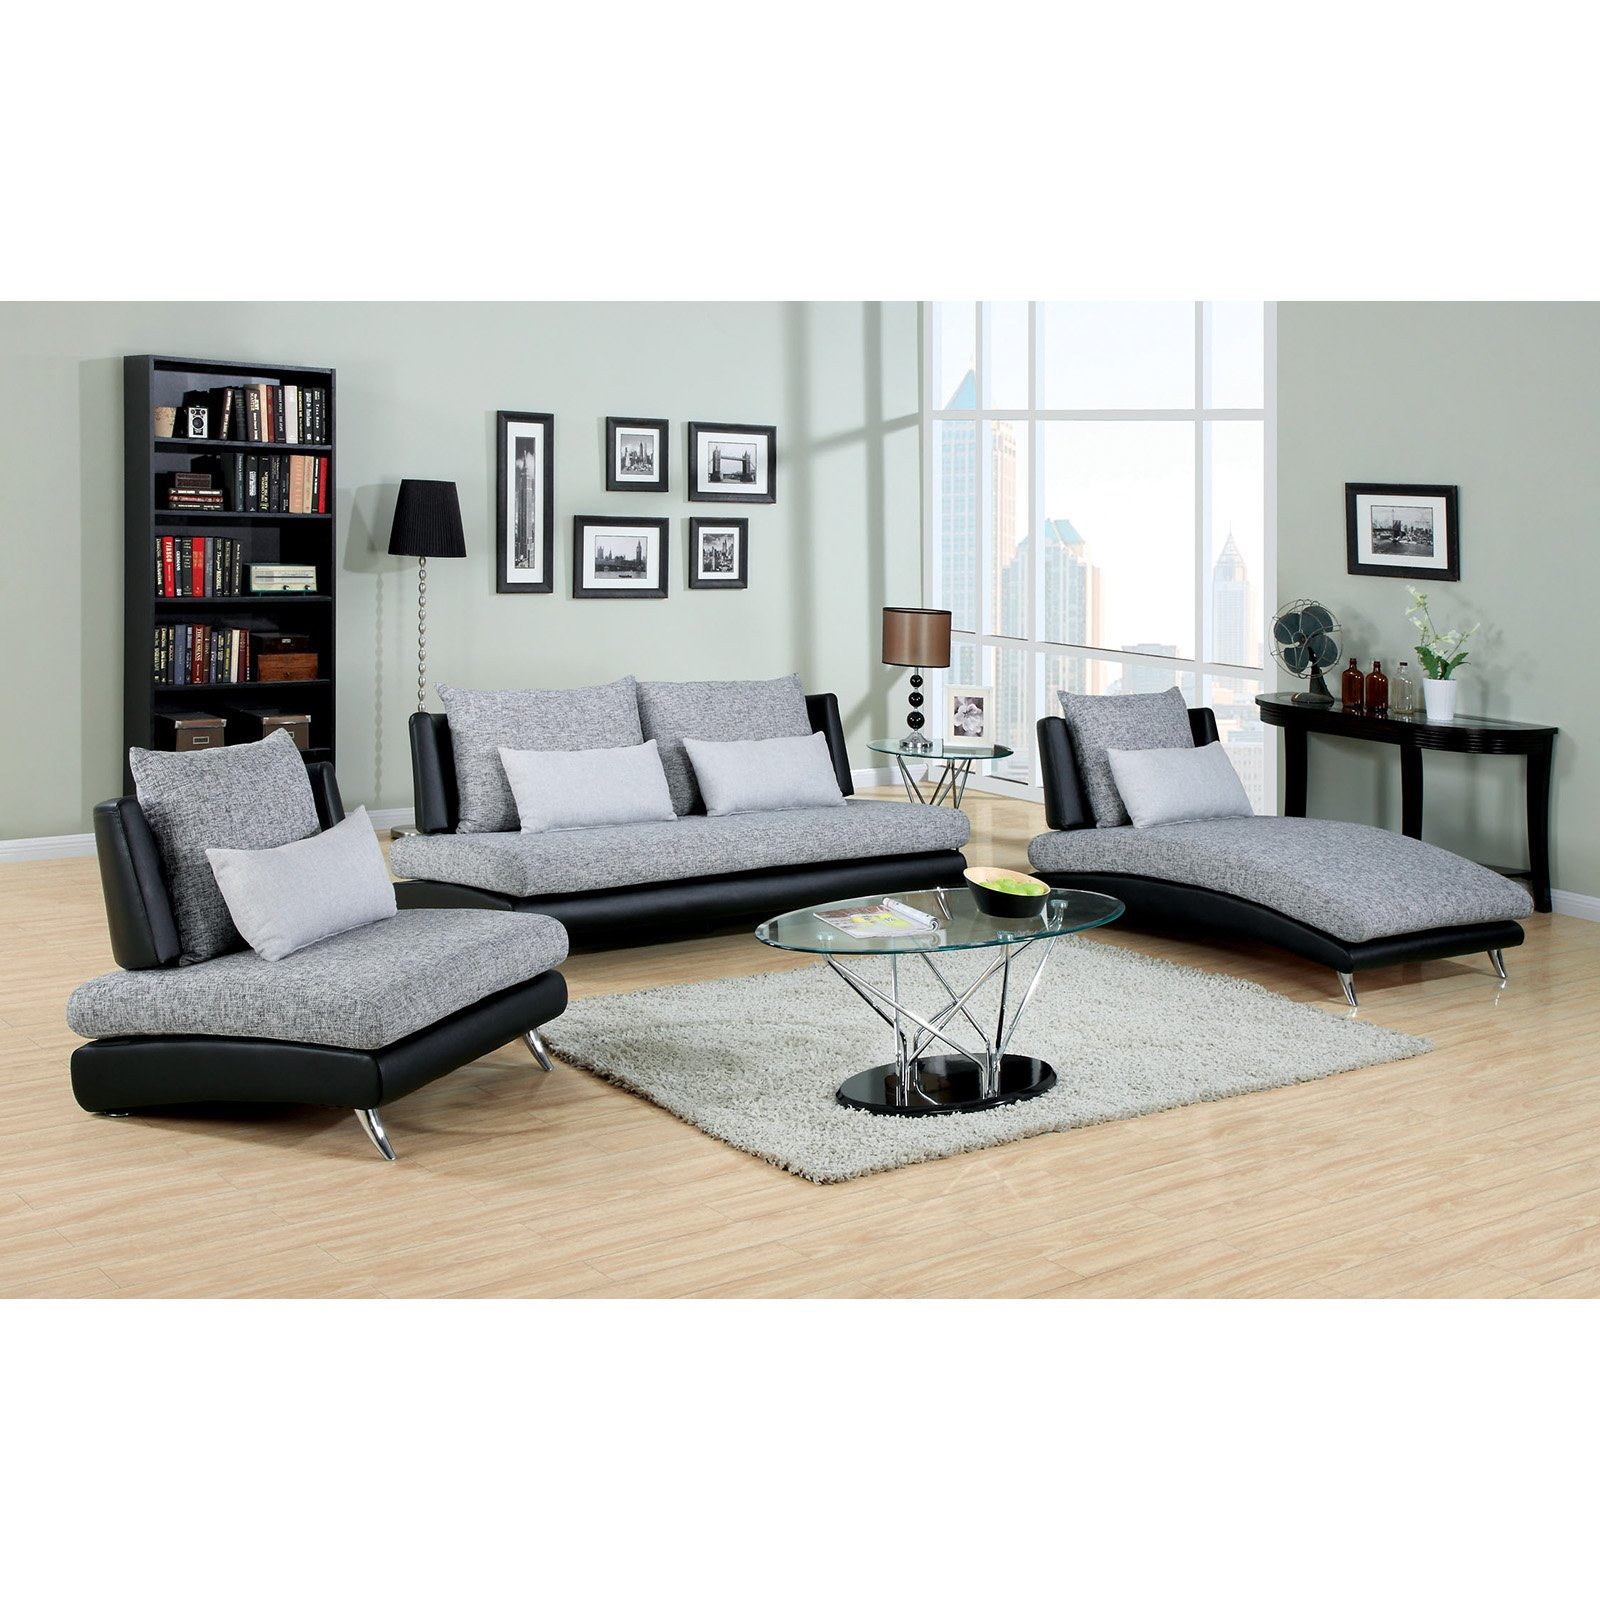 Furniture Of America Cole 3 Piece Fabric And Faux Leather Sofa Set   Gray / Part 88